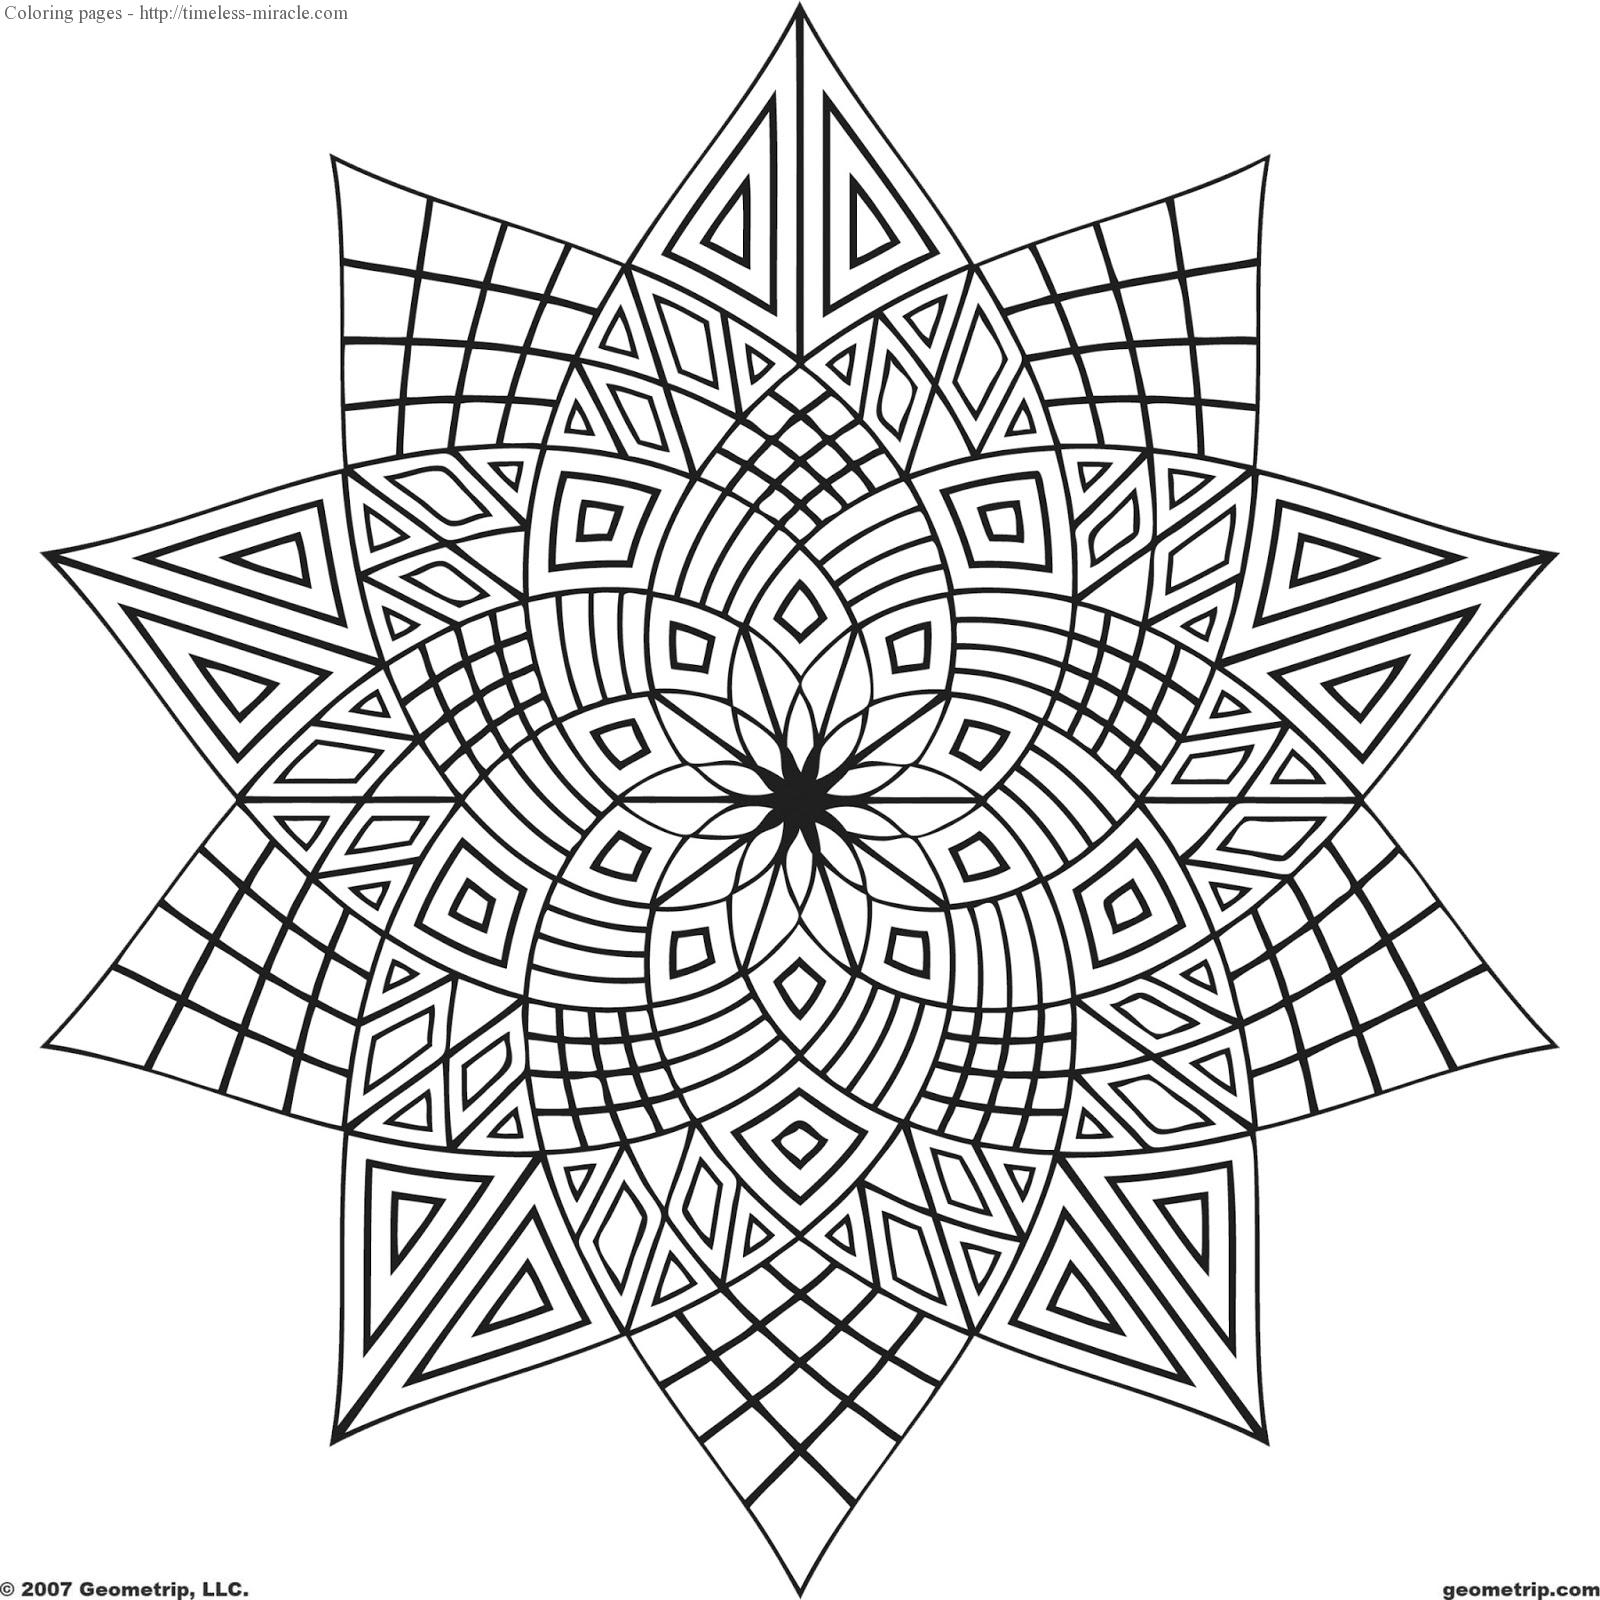 Coloring pages for girls 10 and up - timeless-miracle.com